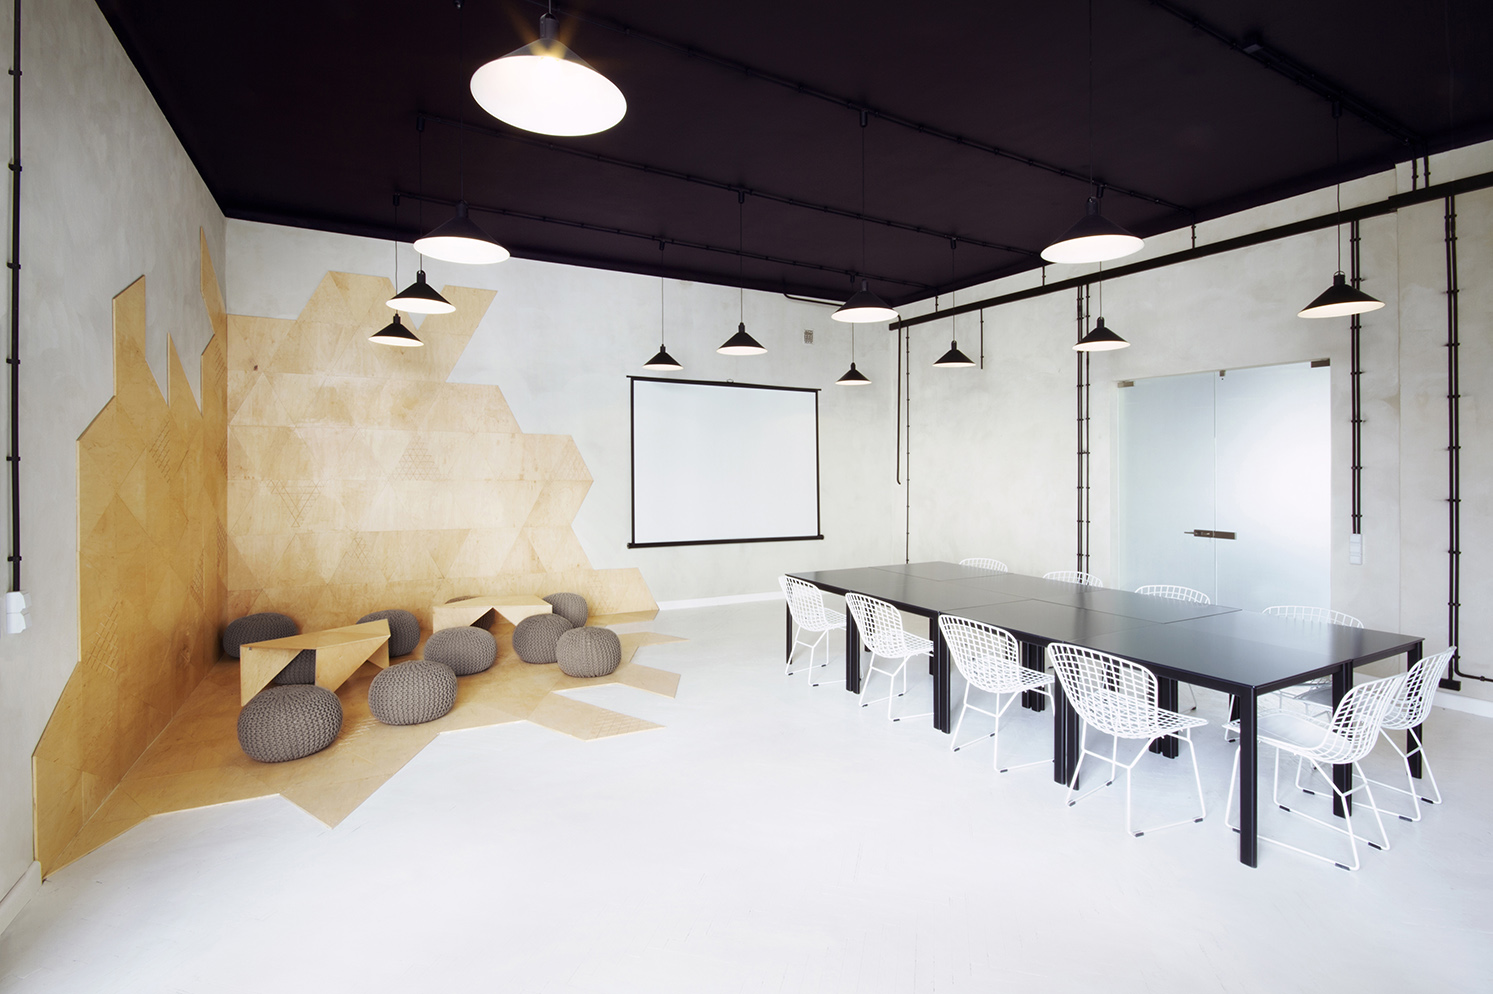 informal meeting room interior design ideas - Conference Room Design Ideas